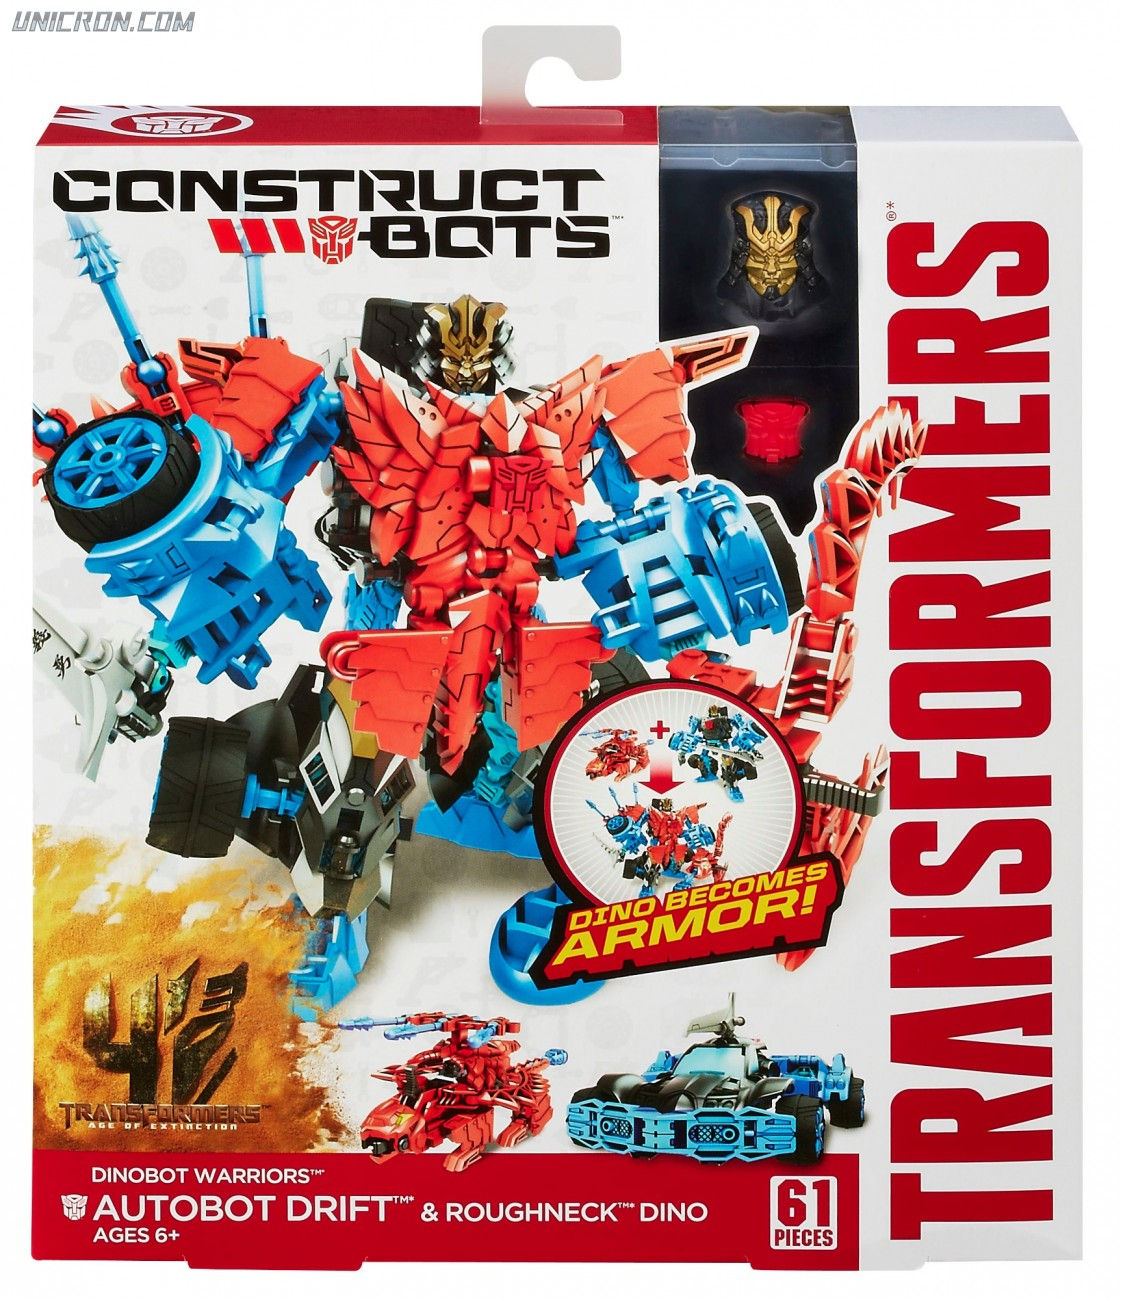 Transformers Construct-Bots Drift with Roughneck - Construct-Bots Dinobot Warriors toy